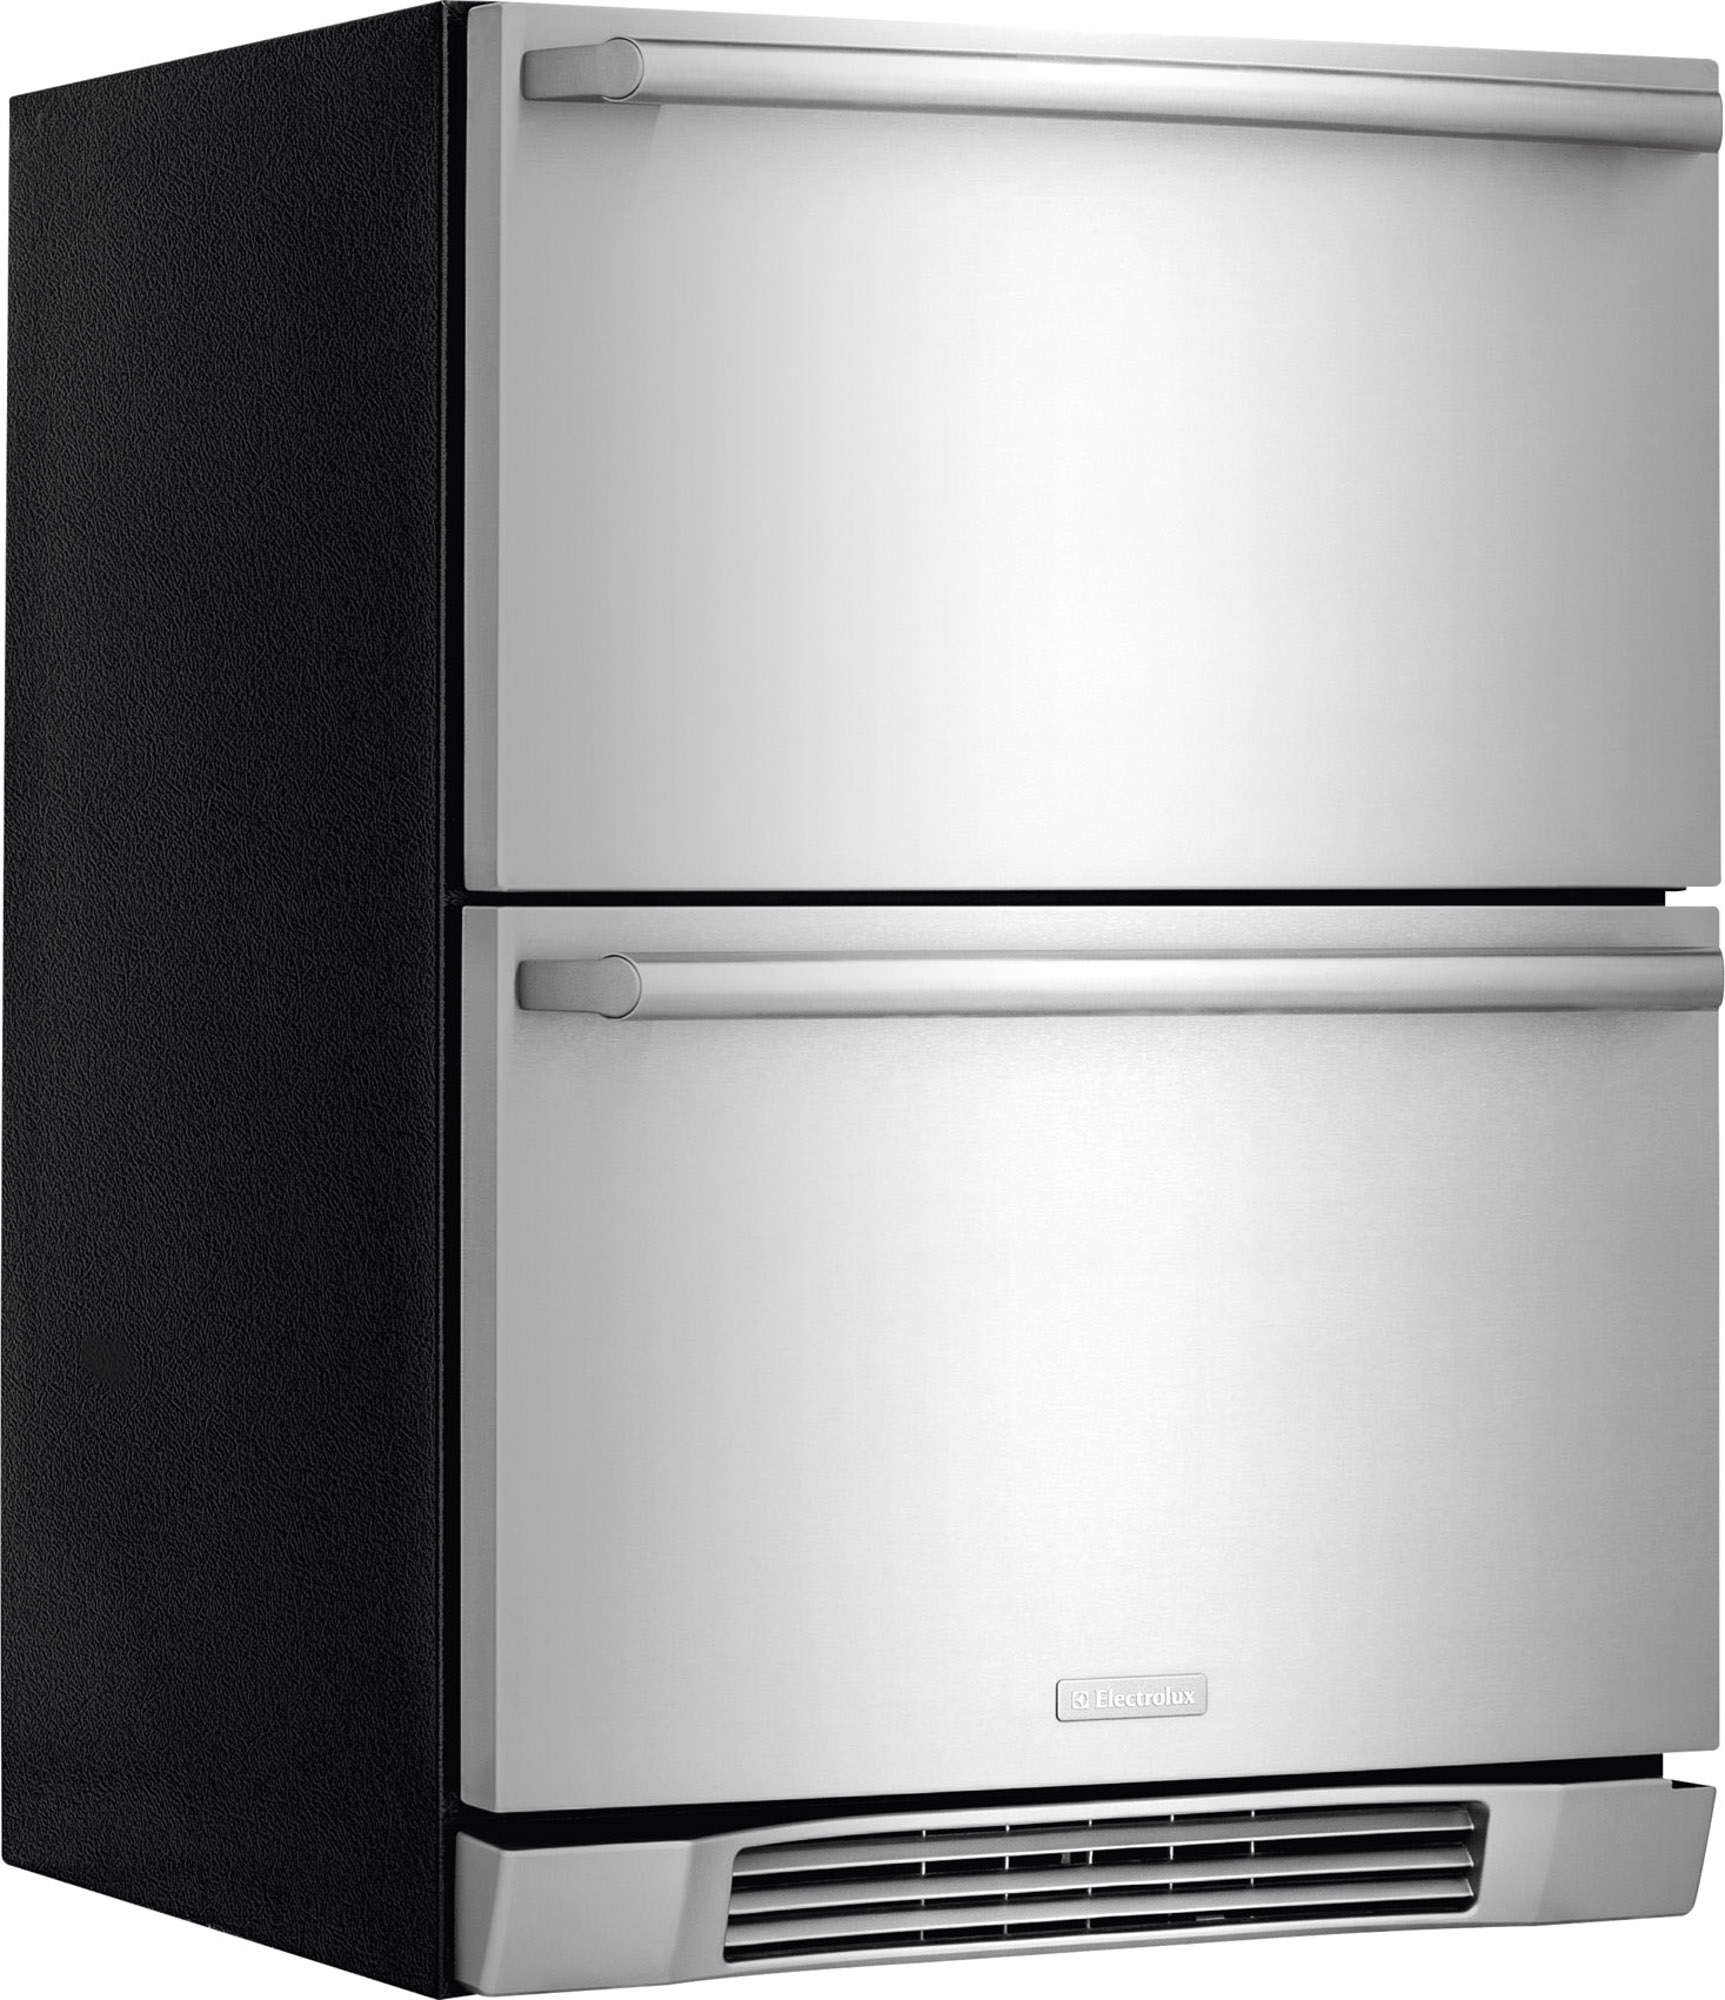 Electrolux EI24RD10QS 4.9 cu. ft. Refrigerator Drawers - Stainless Steel